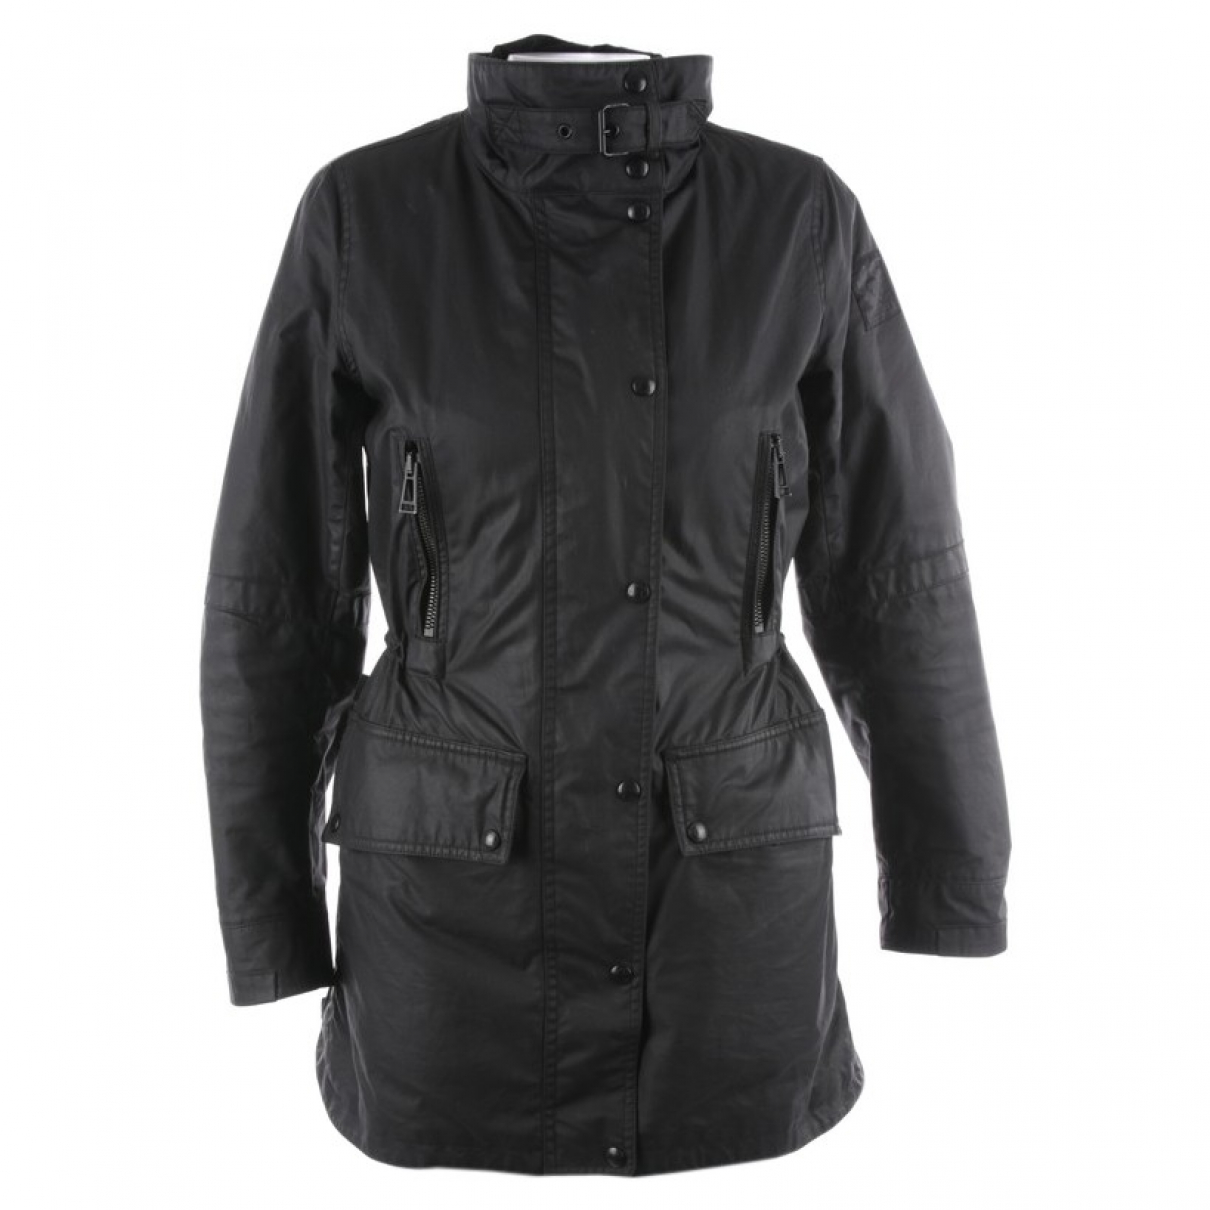 Belstaff \N Black Cotton jacket for Women 40 FR